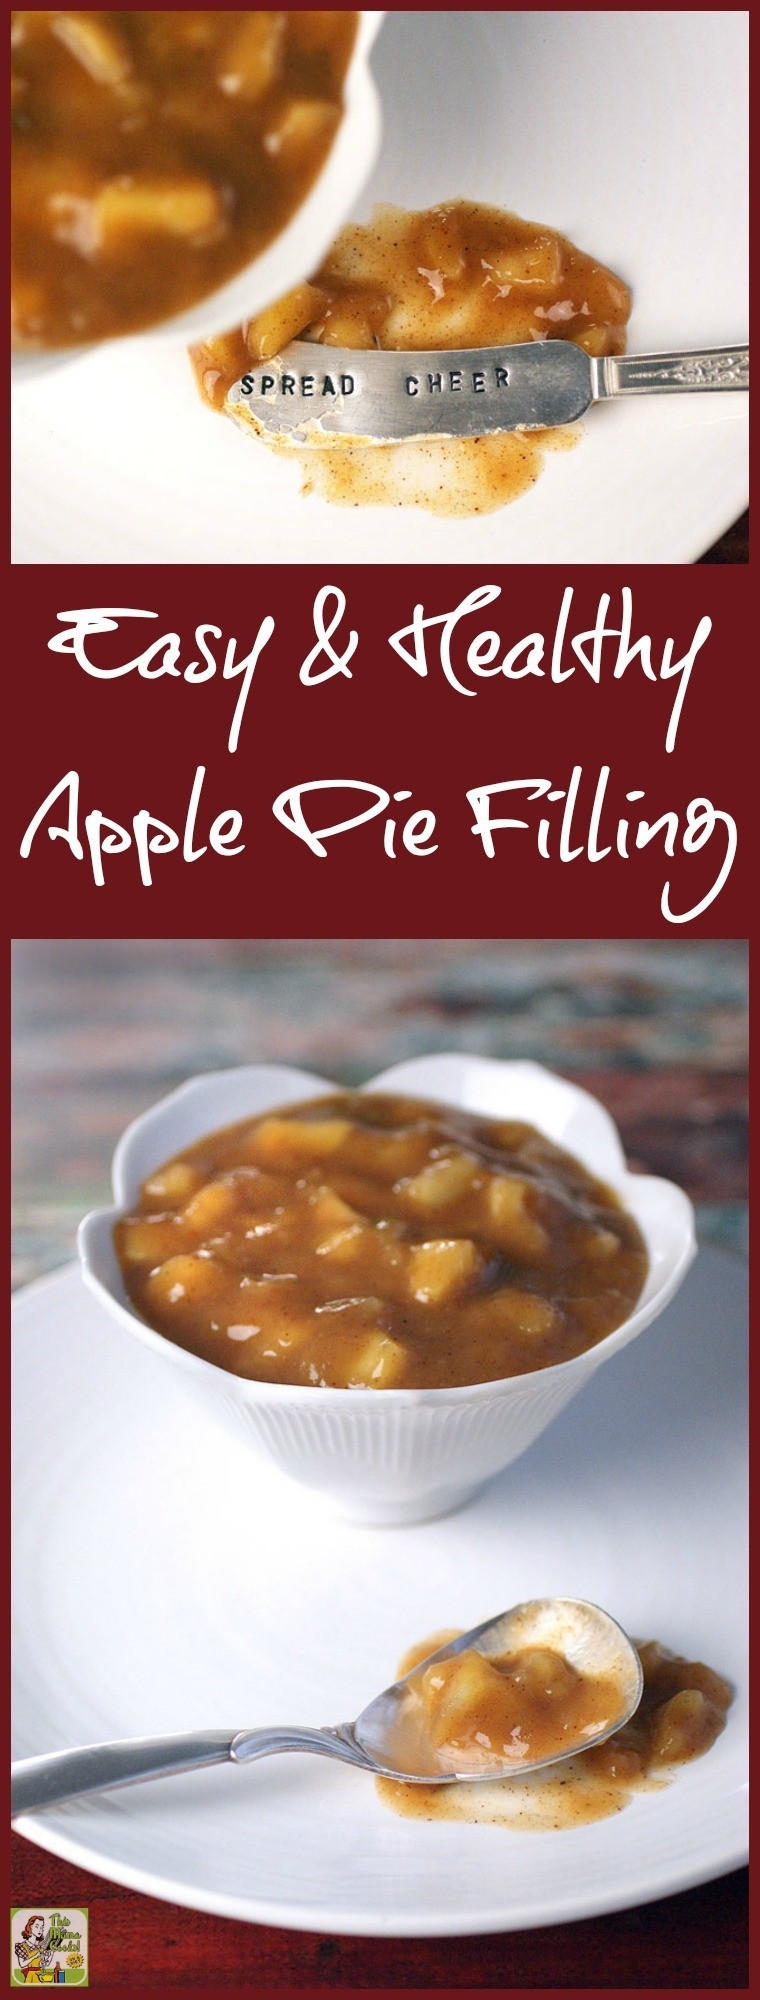 Healthy Apple Pie Filling the Best Ideas for Easy & Healthy Apple Pie Filling